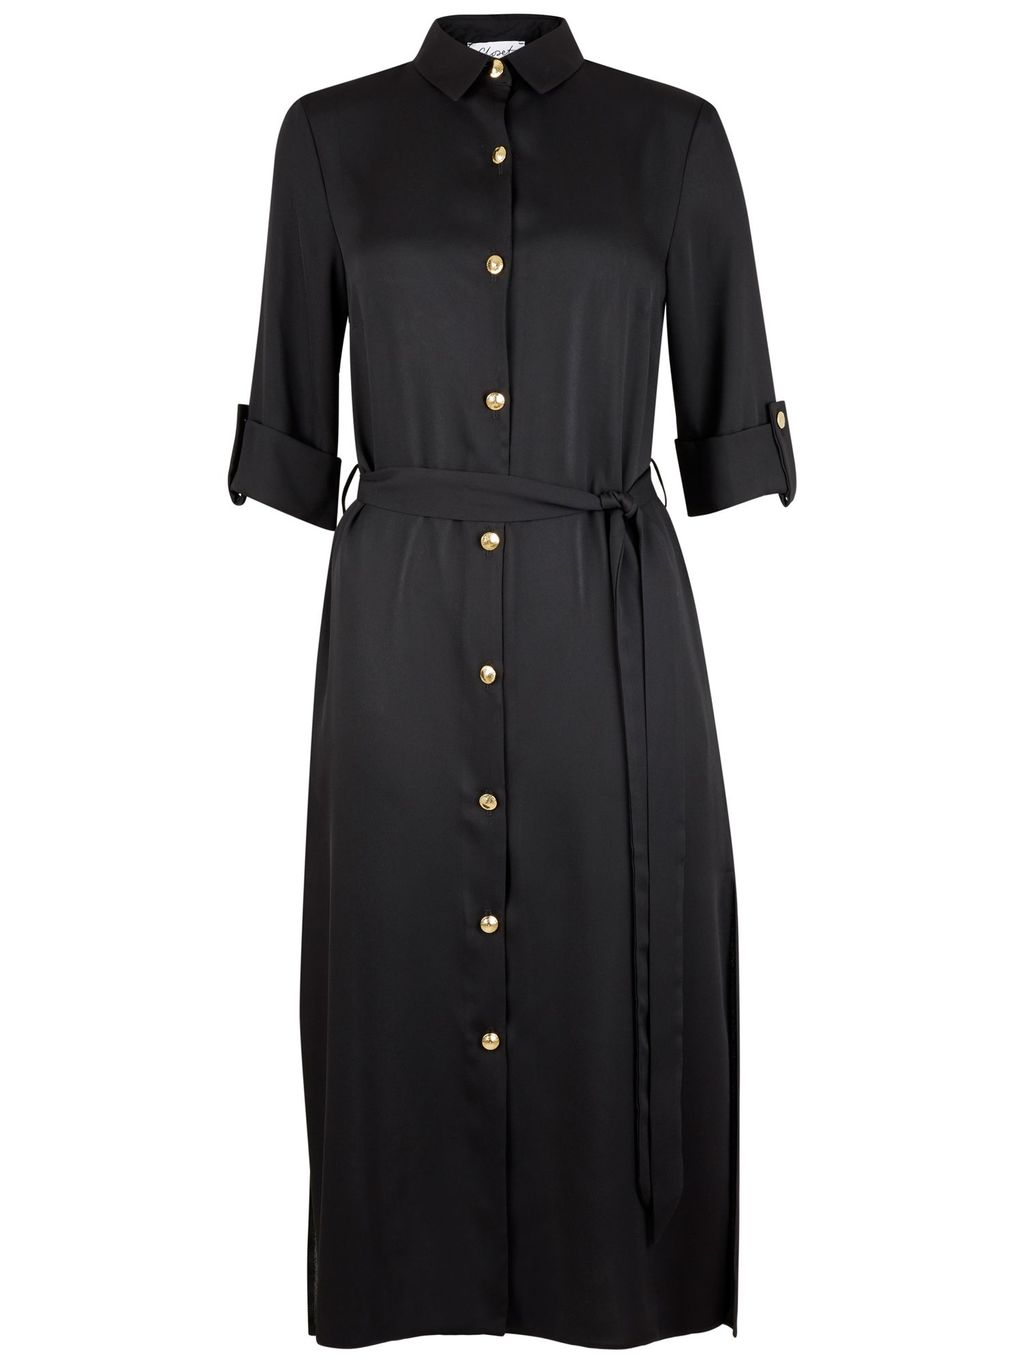 Long Line Belted Slit Shirt, Black - neckline: shirt collar/peter pan/zip with opening; pattern: plain; style: shirt; hip detail: fitted at hip; waist detail: belted waist/tie at waist/drawstring; predominant colour: black; occasions: casual, creative work; fibres: polyester/polyamide - 100%; fit: body skimming; length: mid thigh; sleeve length: long sleeve; sleeve style: standard; texture group: crepes; pattern type: fabric; season: s/s 2016; wardrobe: basic